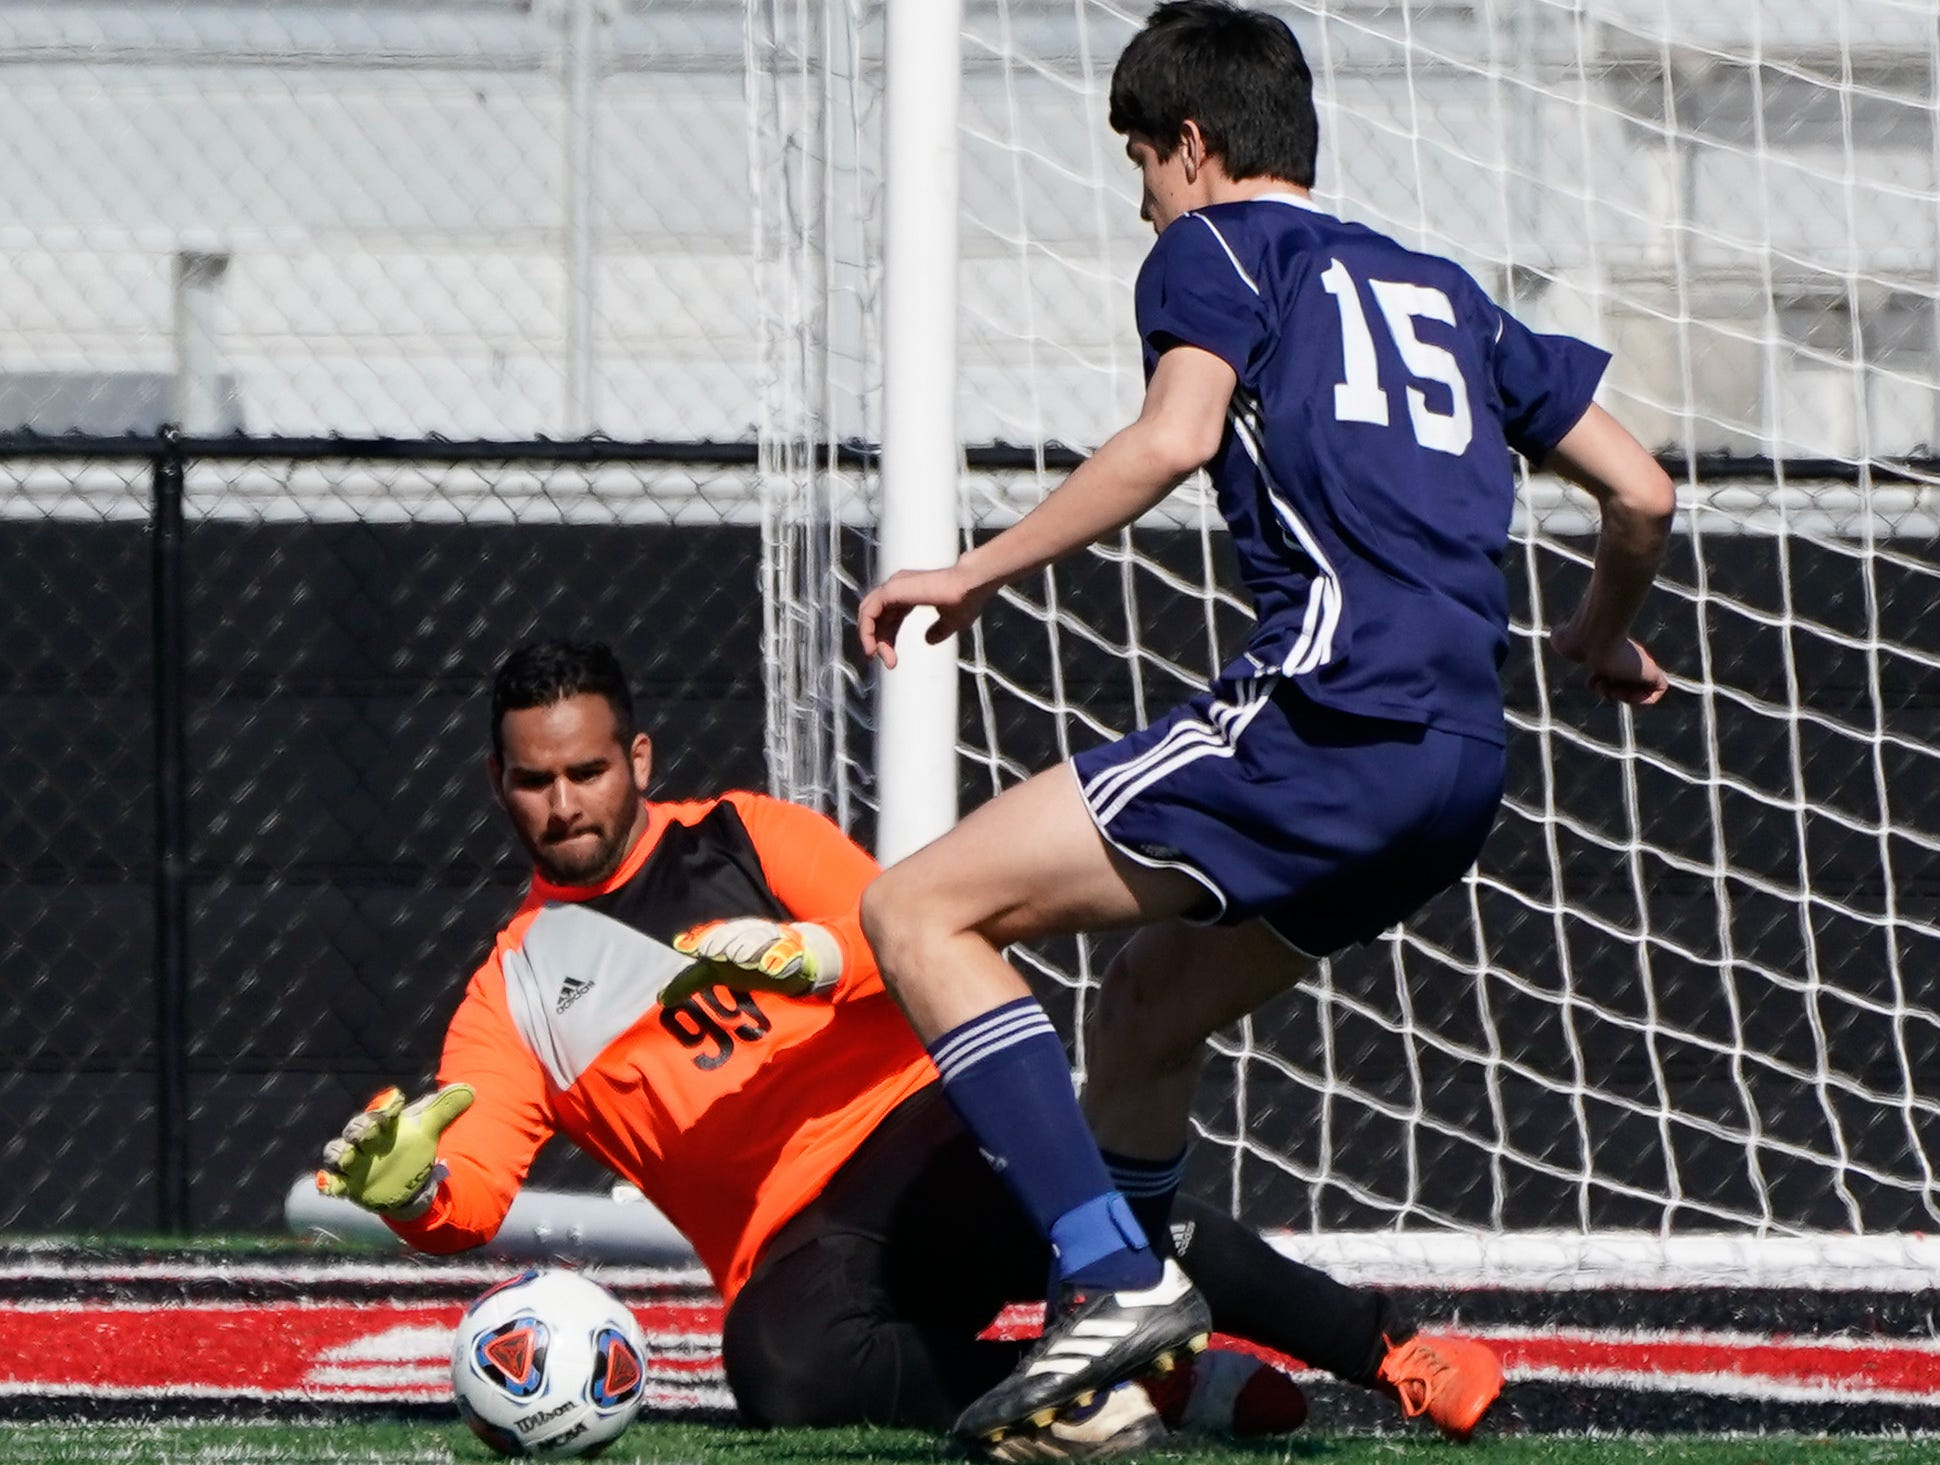 St. Andrew's keeper Sacheen Tipnis makes a save against Sacred Heart during the MHSAA 1A,2A,3A  Boys Soccer Championships held at Brandon High School in Brandon, MS, Saturday February 9, 2019.(Bob Smith-For The Clarion Ledger)